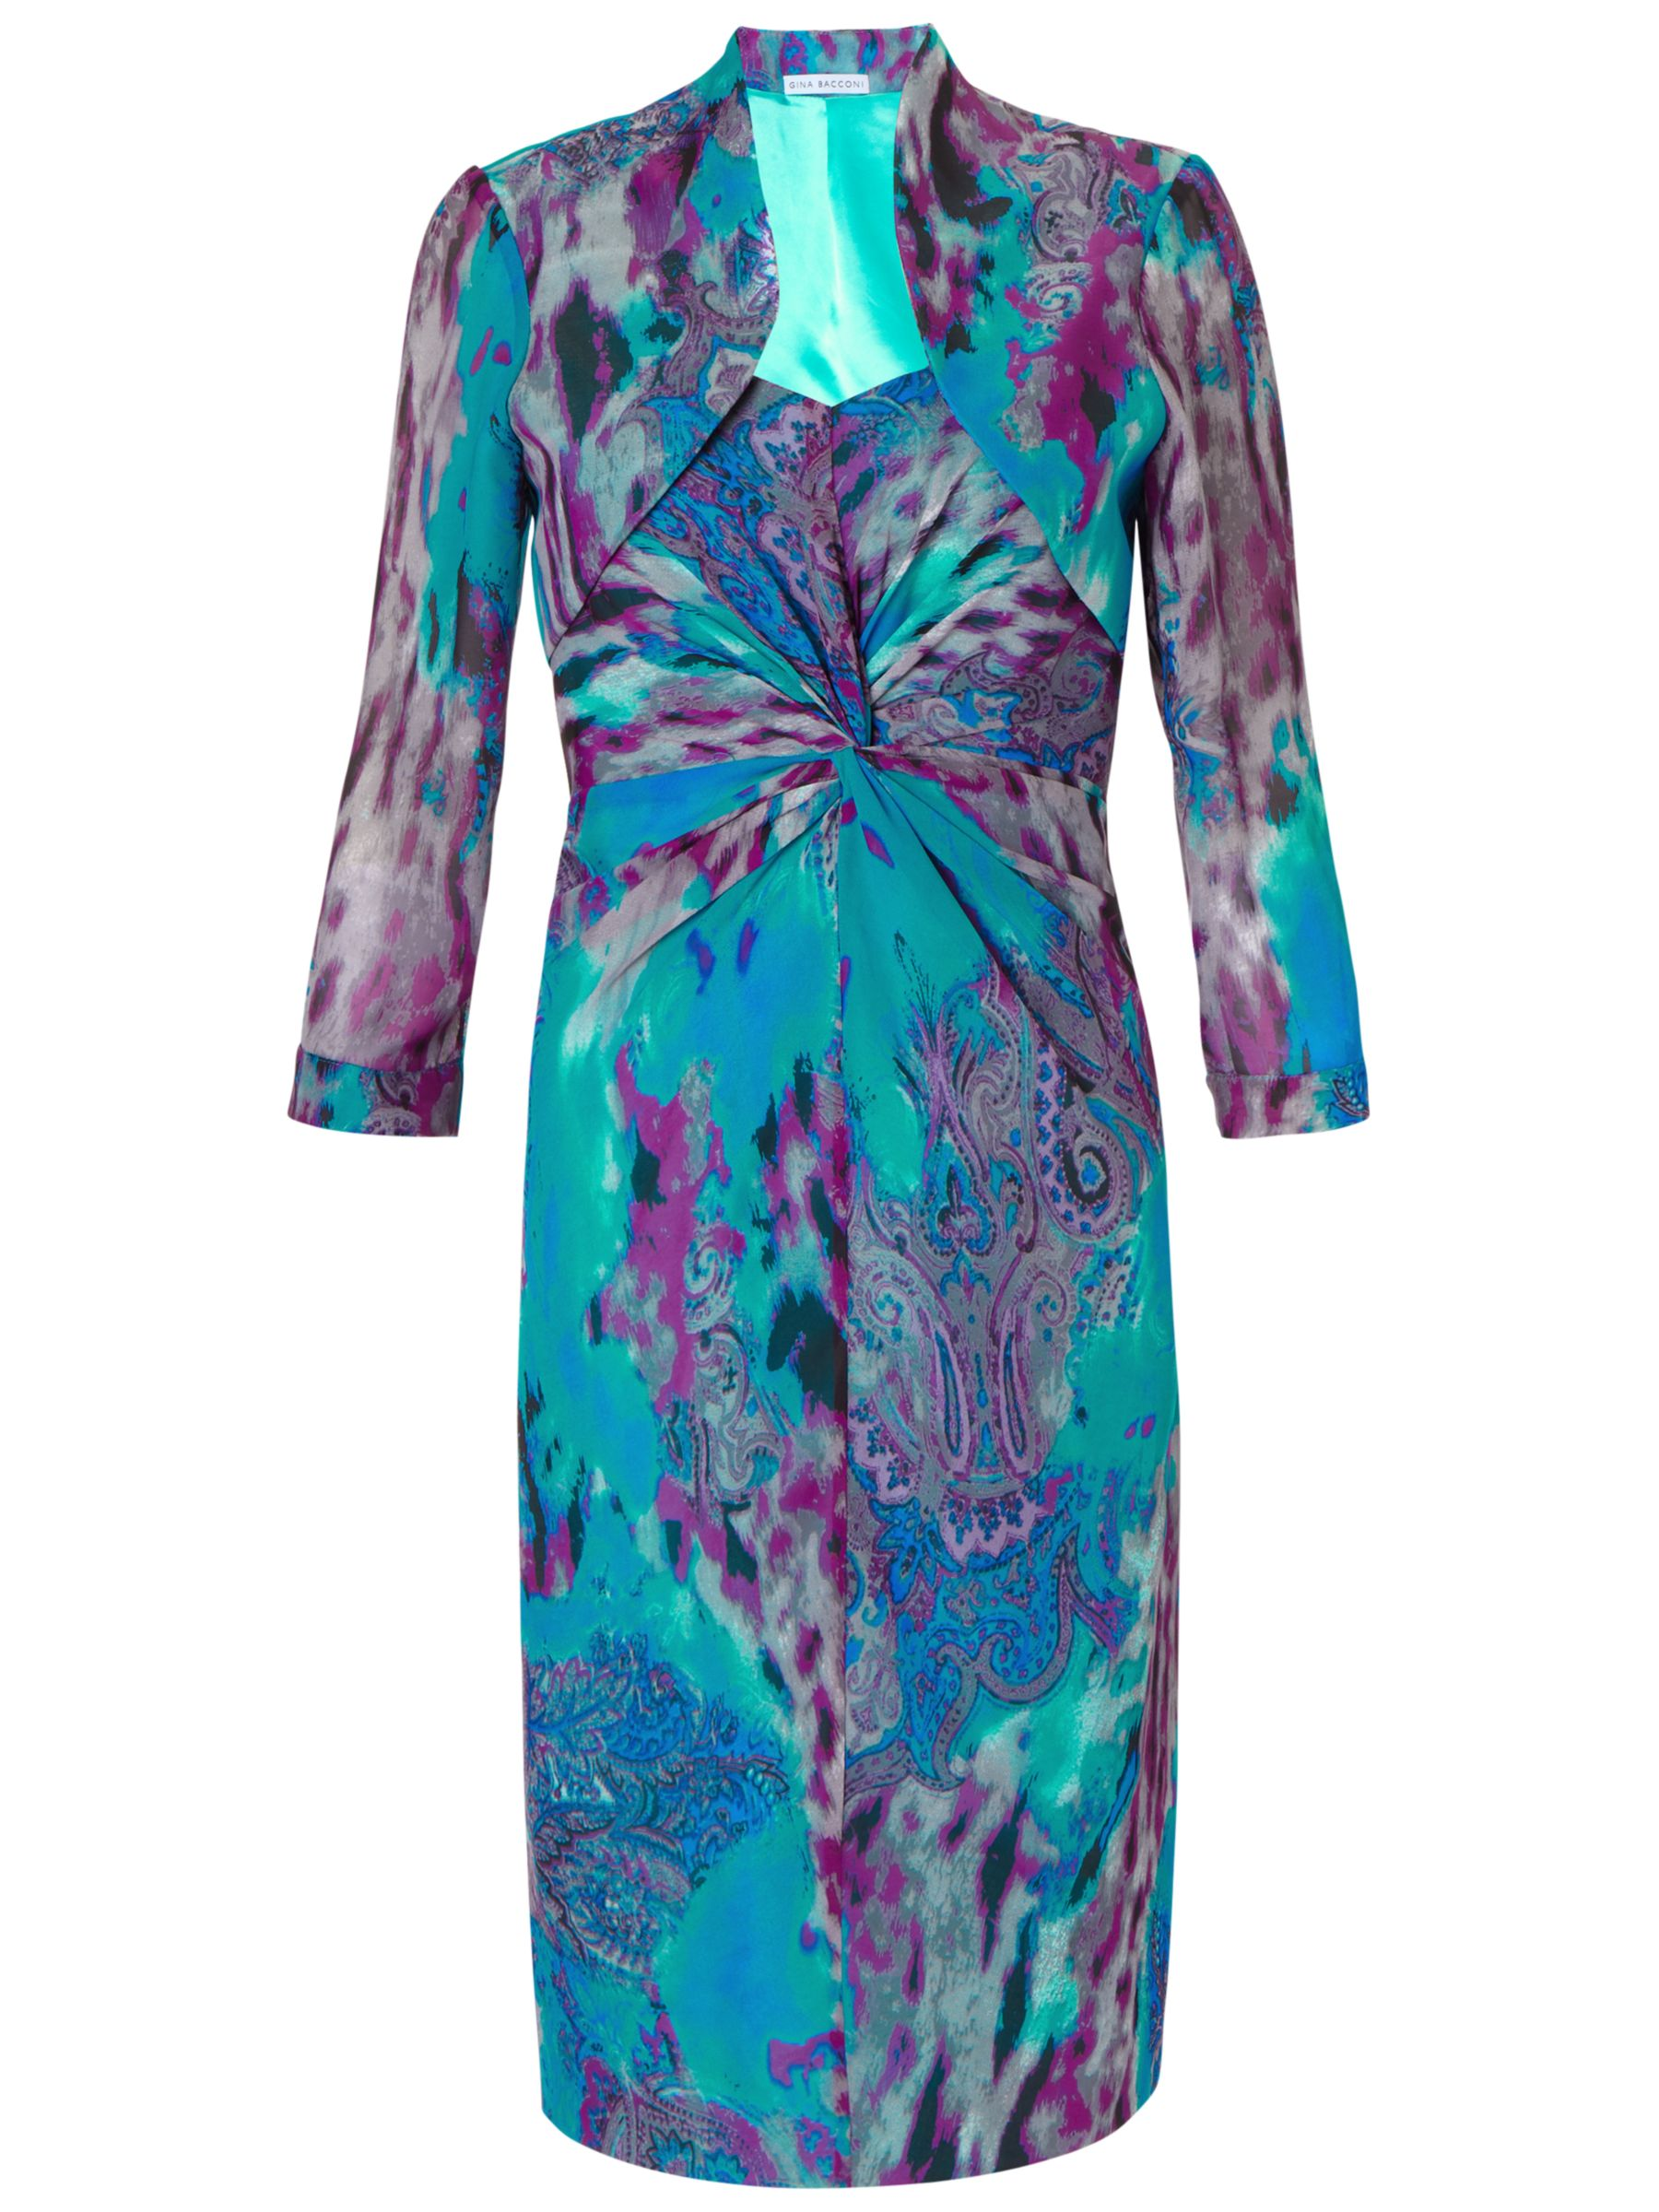 Gina Bacconi Paisley Chiffon Dress And Bolero, Turquoise